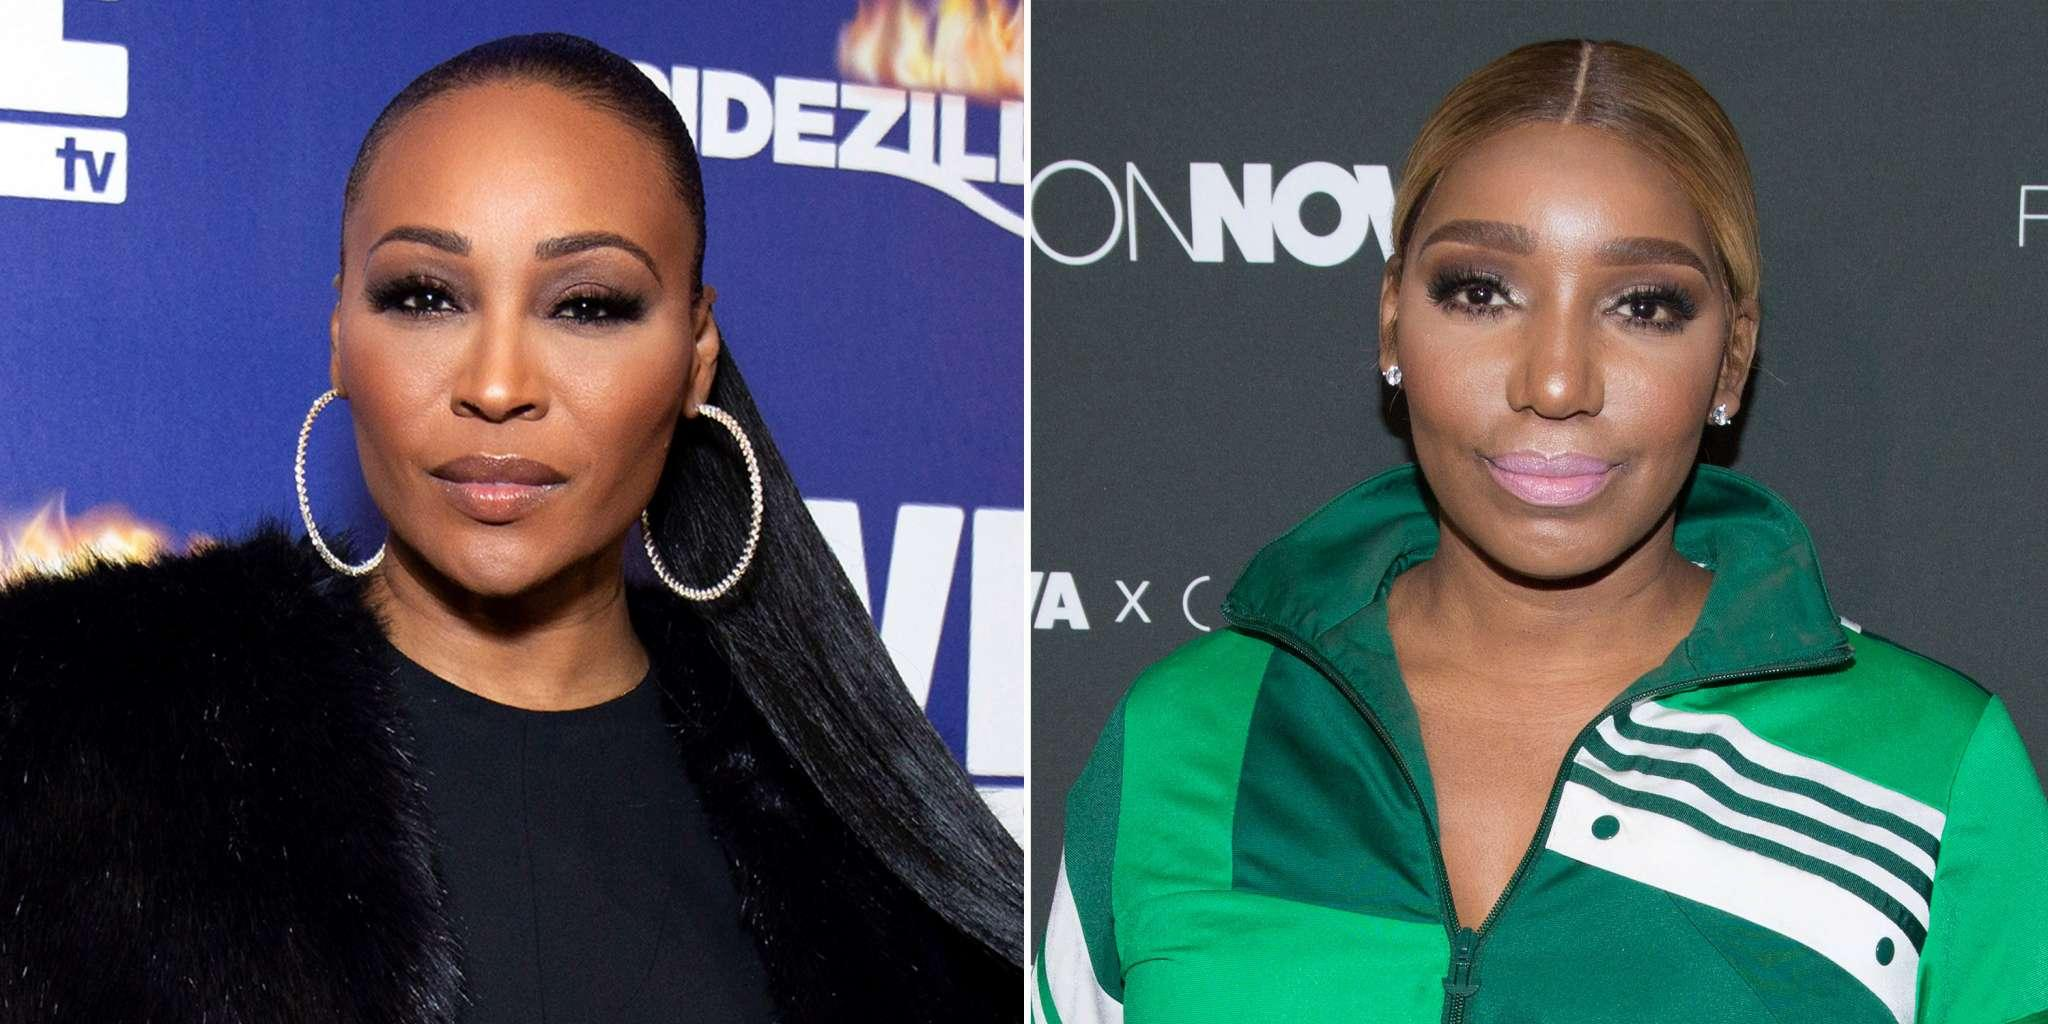 Cynthia Bailey Sees Her Beef With Co-Star NeNe Leakes As Just 'Stupid Nonsense' And Still Wants Her To Be Part Of 'RHOA'